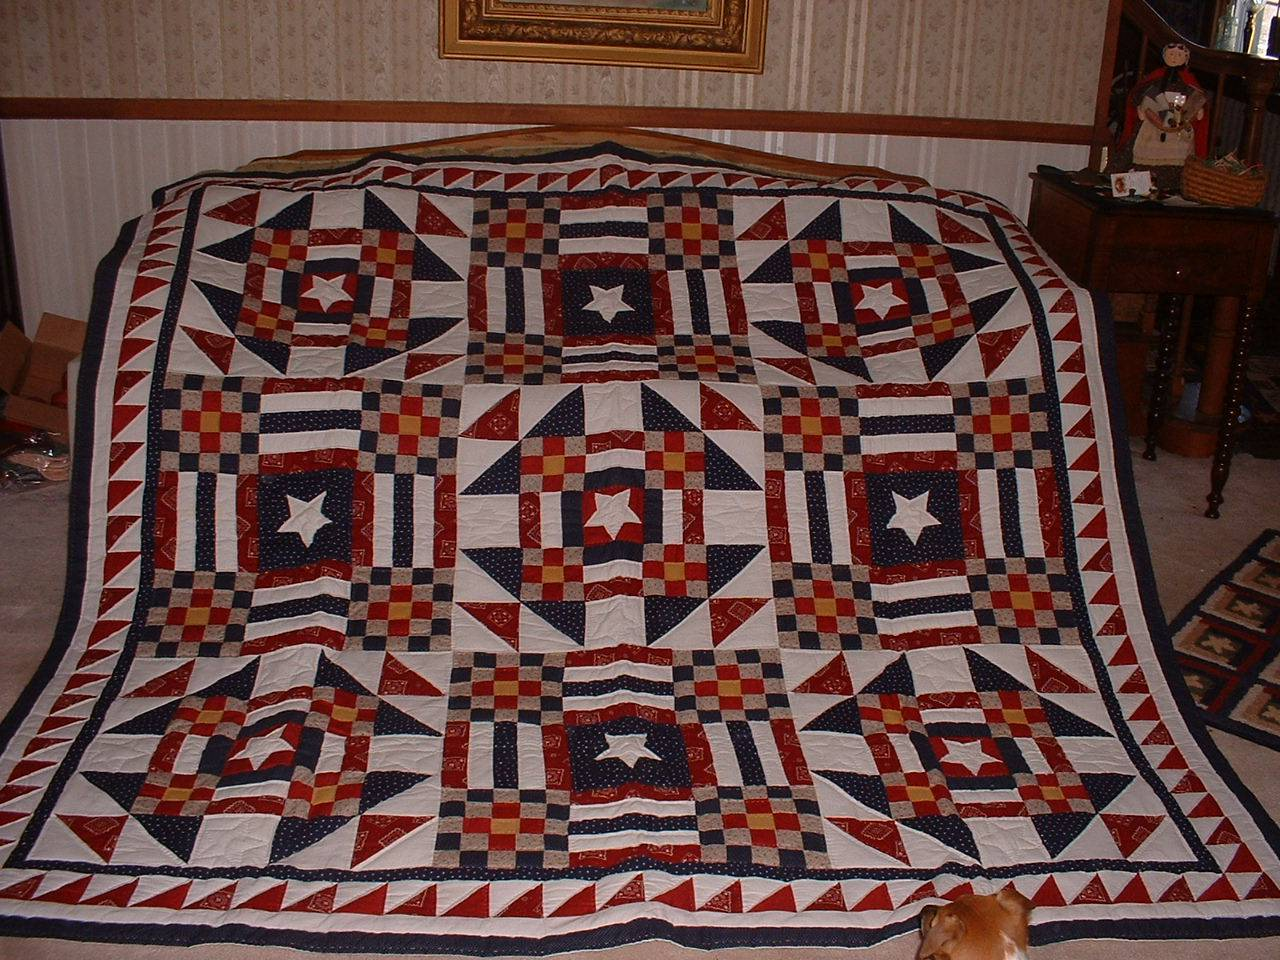 Patchwork Checkerboard Quilt